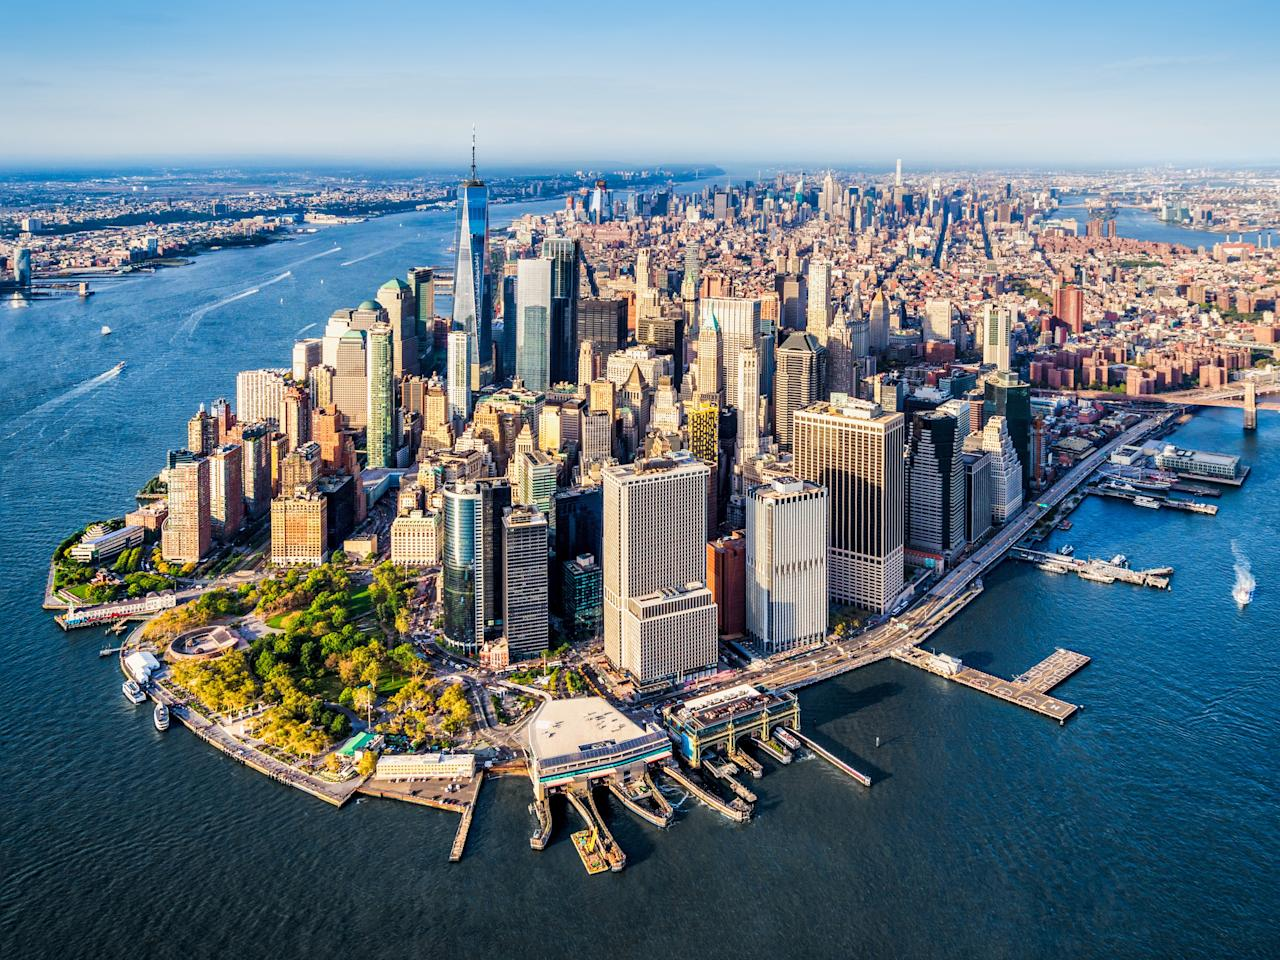 """<a rel=""""nofollow"""" href=""""https://www.architecturaldigest.com/gallery/10-nyc-rooftop-bars-to-explore-this-summer/all?mbid=synd_yahoo_rss"""">There may be plenty of rooftop bars across Manhattan</a> and the surrounding boroughs, but heading up there doesn't compare to a flight around town. Imagine propelling around the Empire State Building or doing a nighttime joyride above Times Square."""